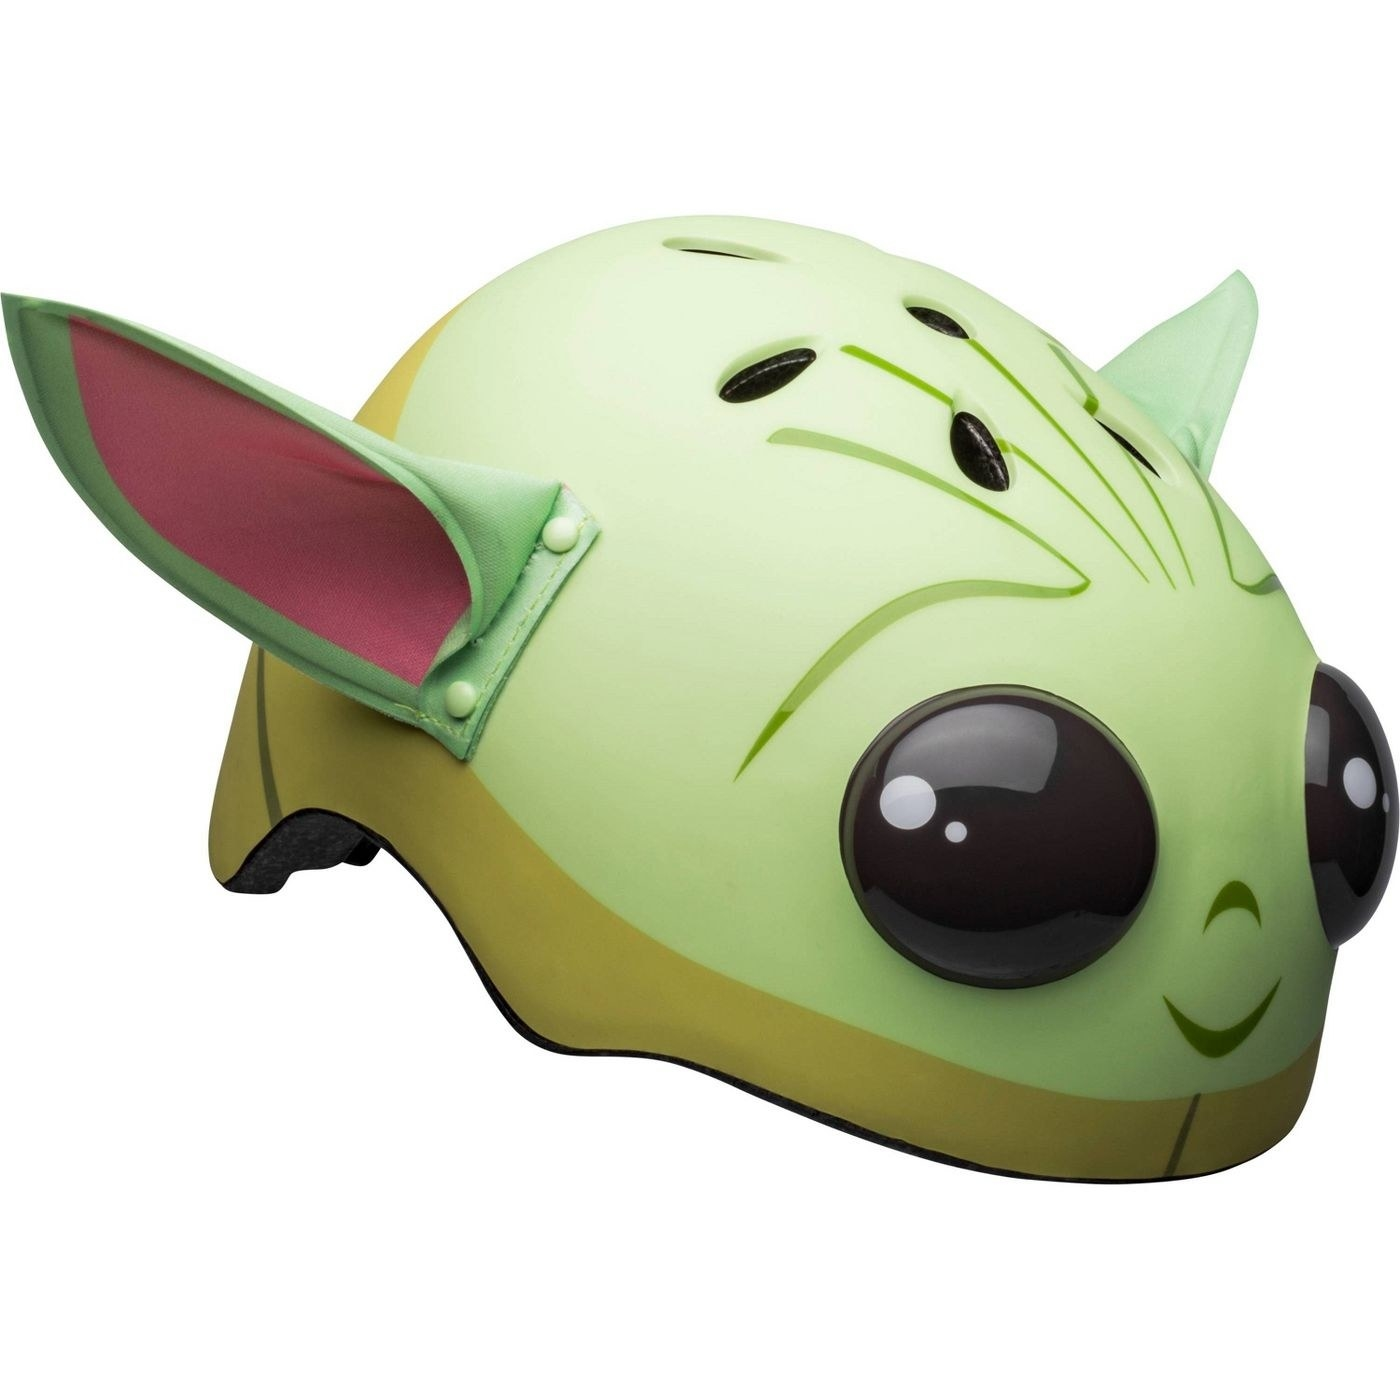 The Baby Yoda face helmet with 3D ears and eyes